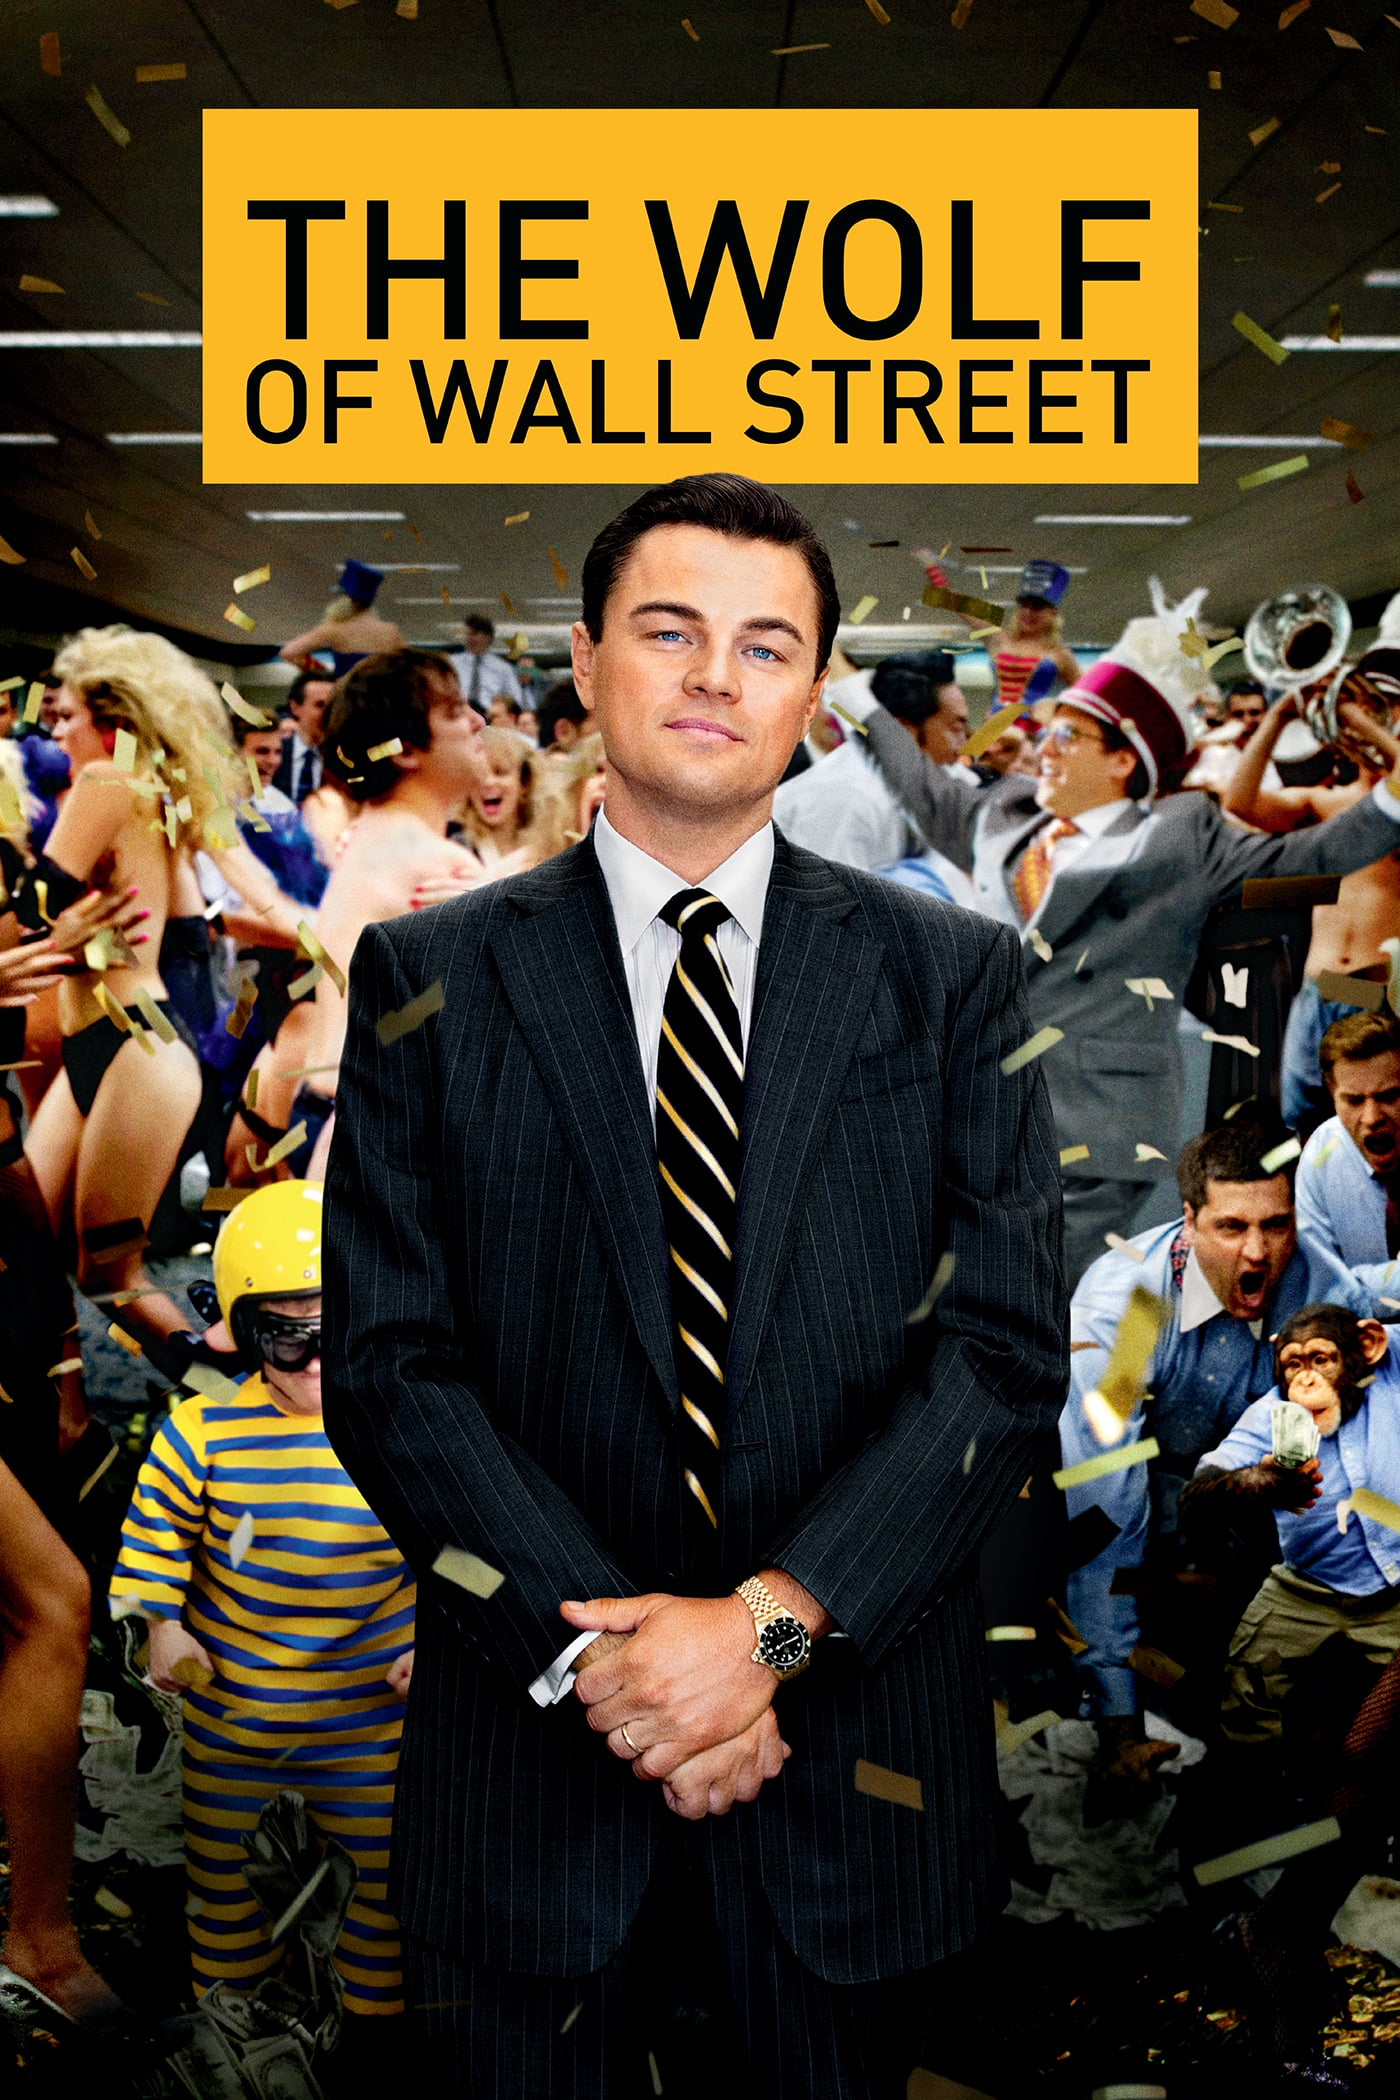 2013 The Wolf of Wall Street movie poster